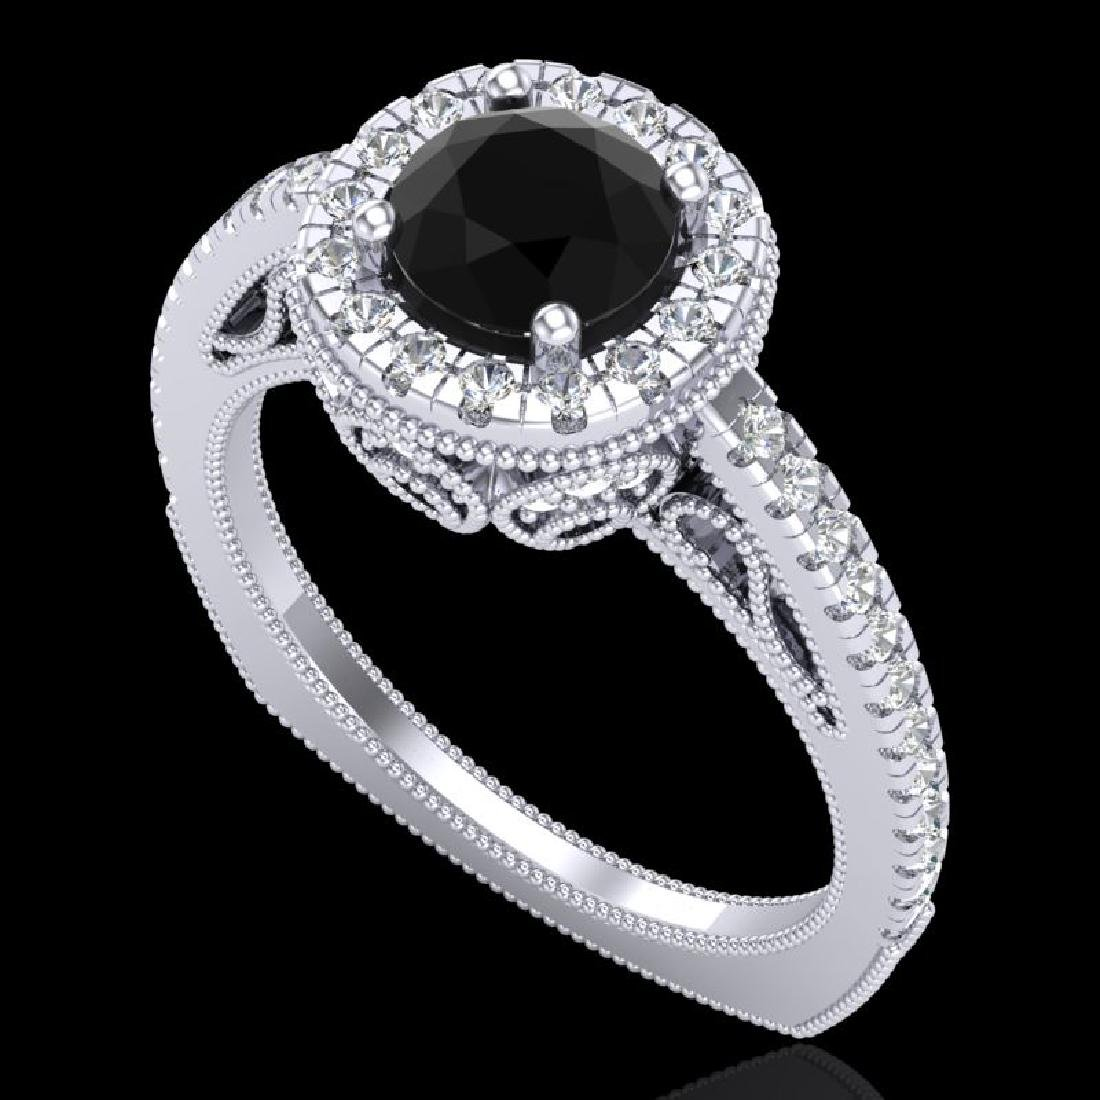 1.55 CTW Fancy Black Diamond Solitaire Engagement Art